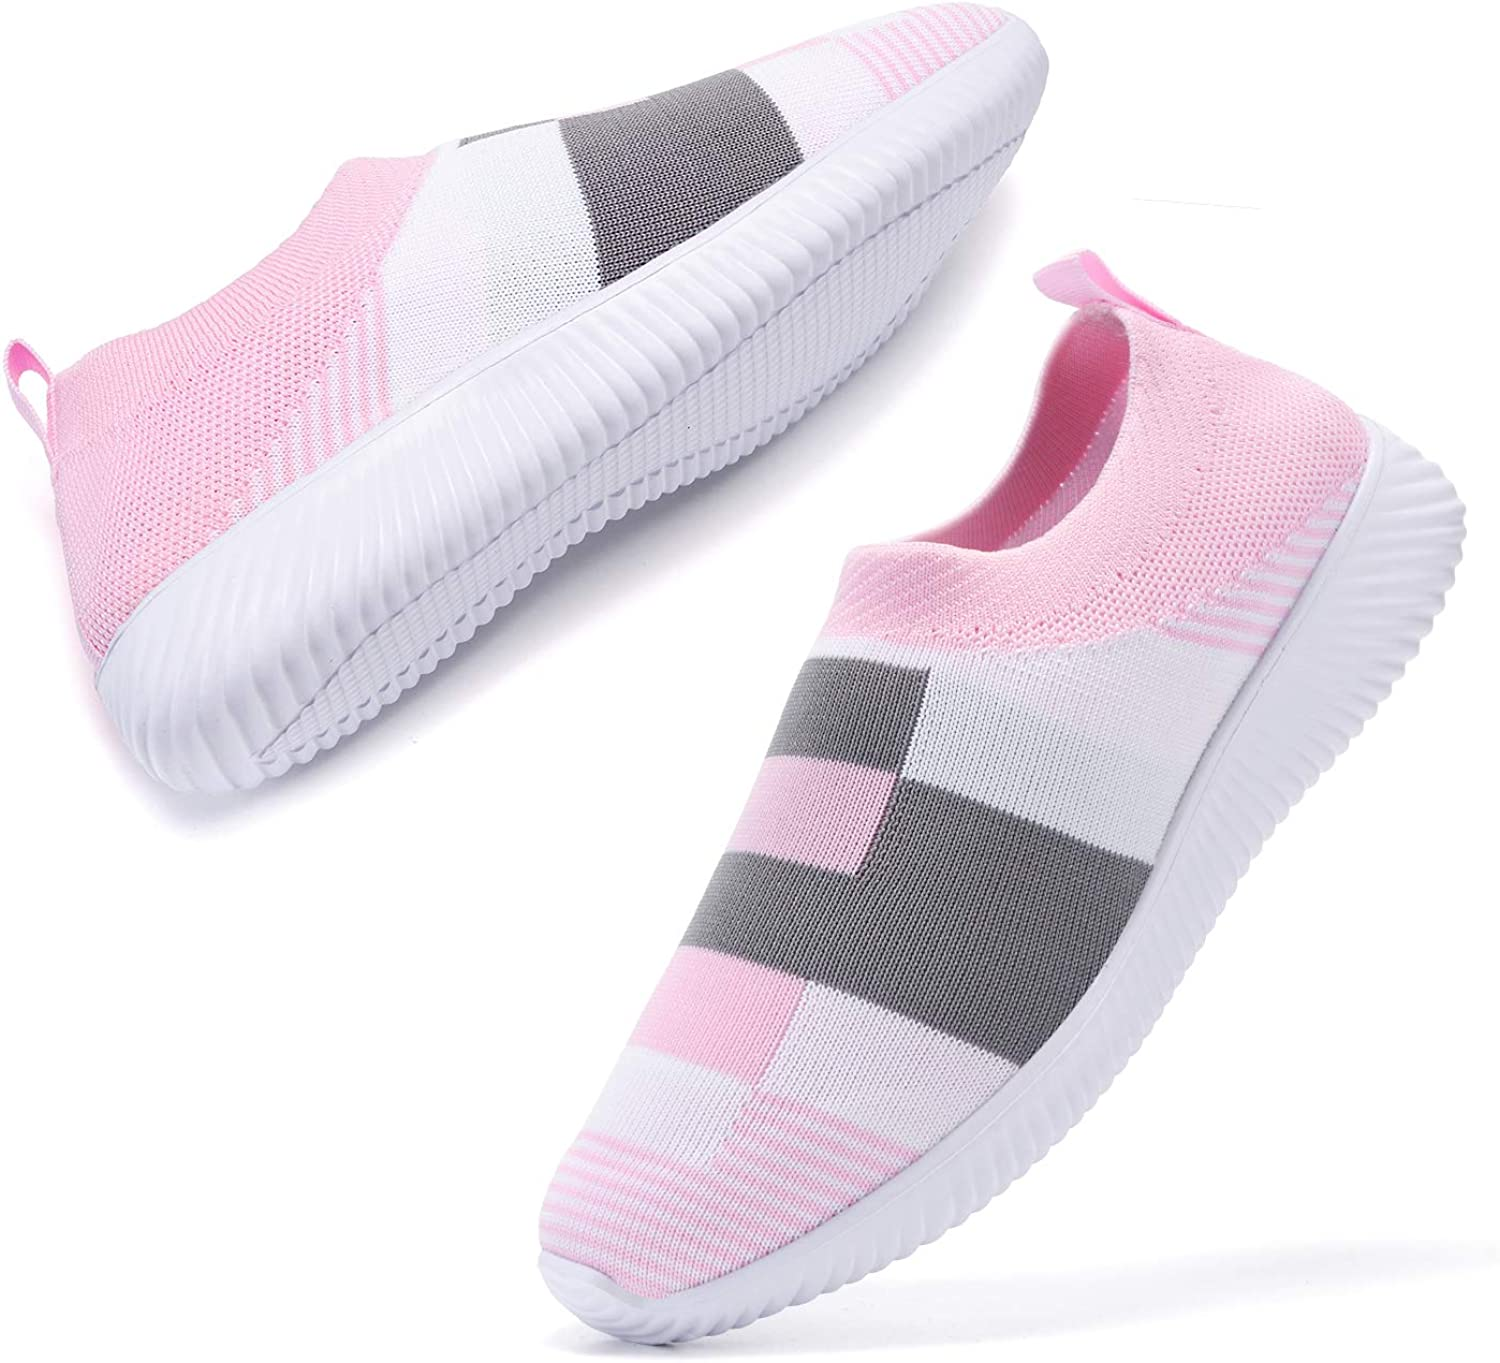 AEMAPE Women Walking Shoes Lightweight Tennis Shoes Breathable mesh Casual Running Shoes Fashion Sneakers Slip on Sock Shoes